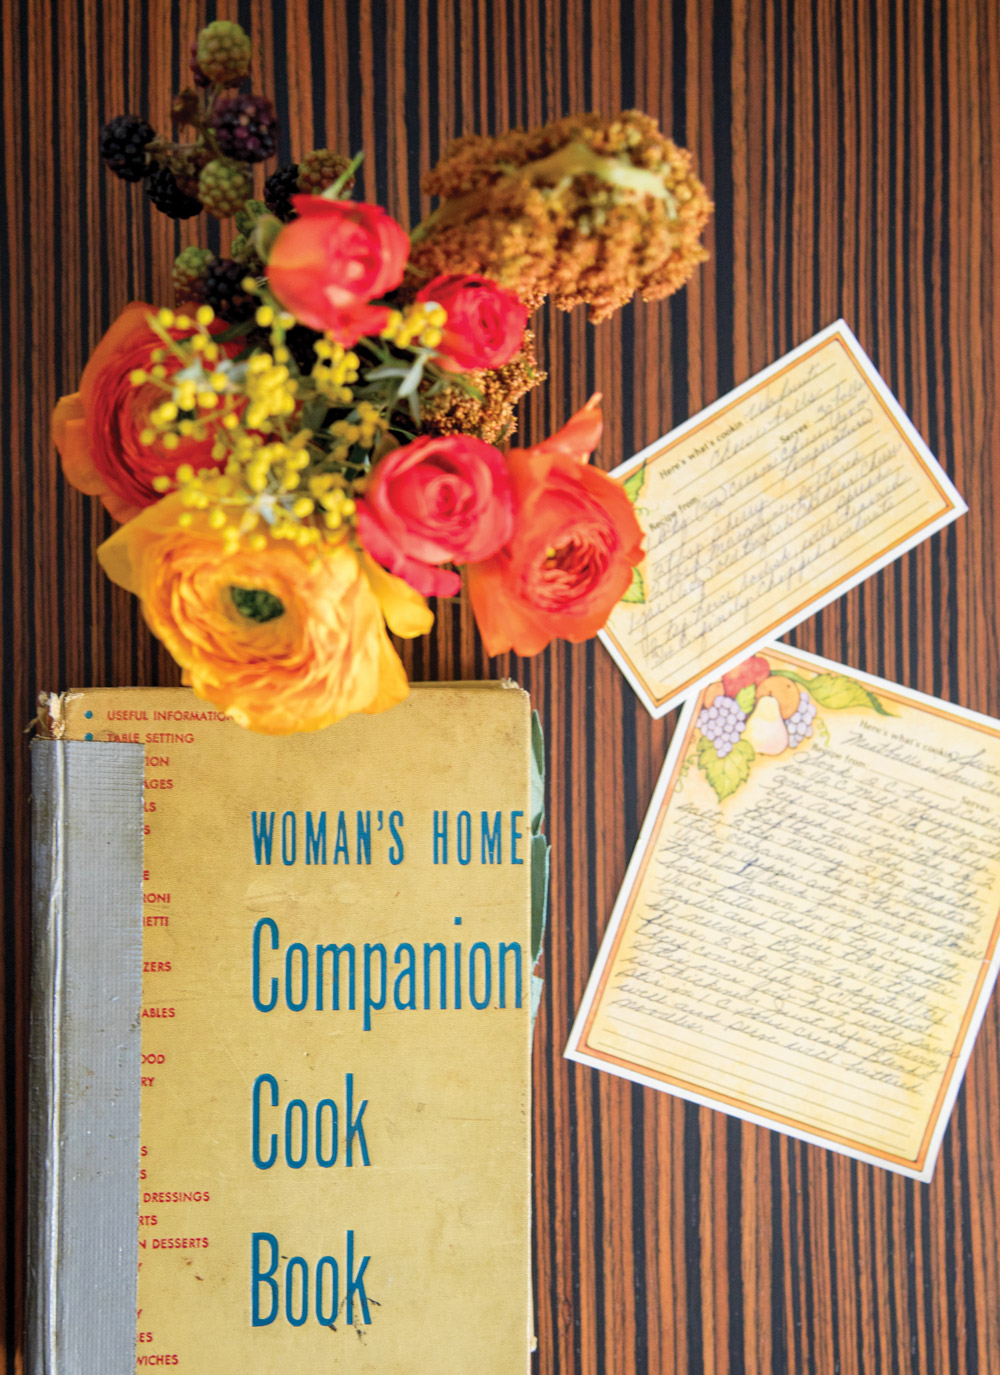 The menu was derived from vintage books and family recipe cards.